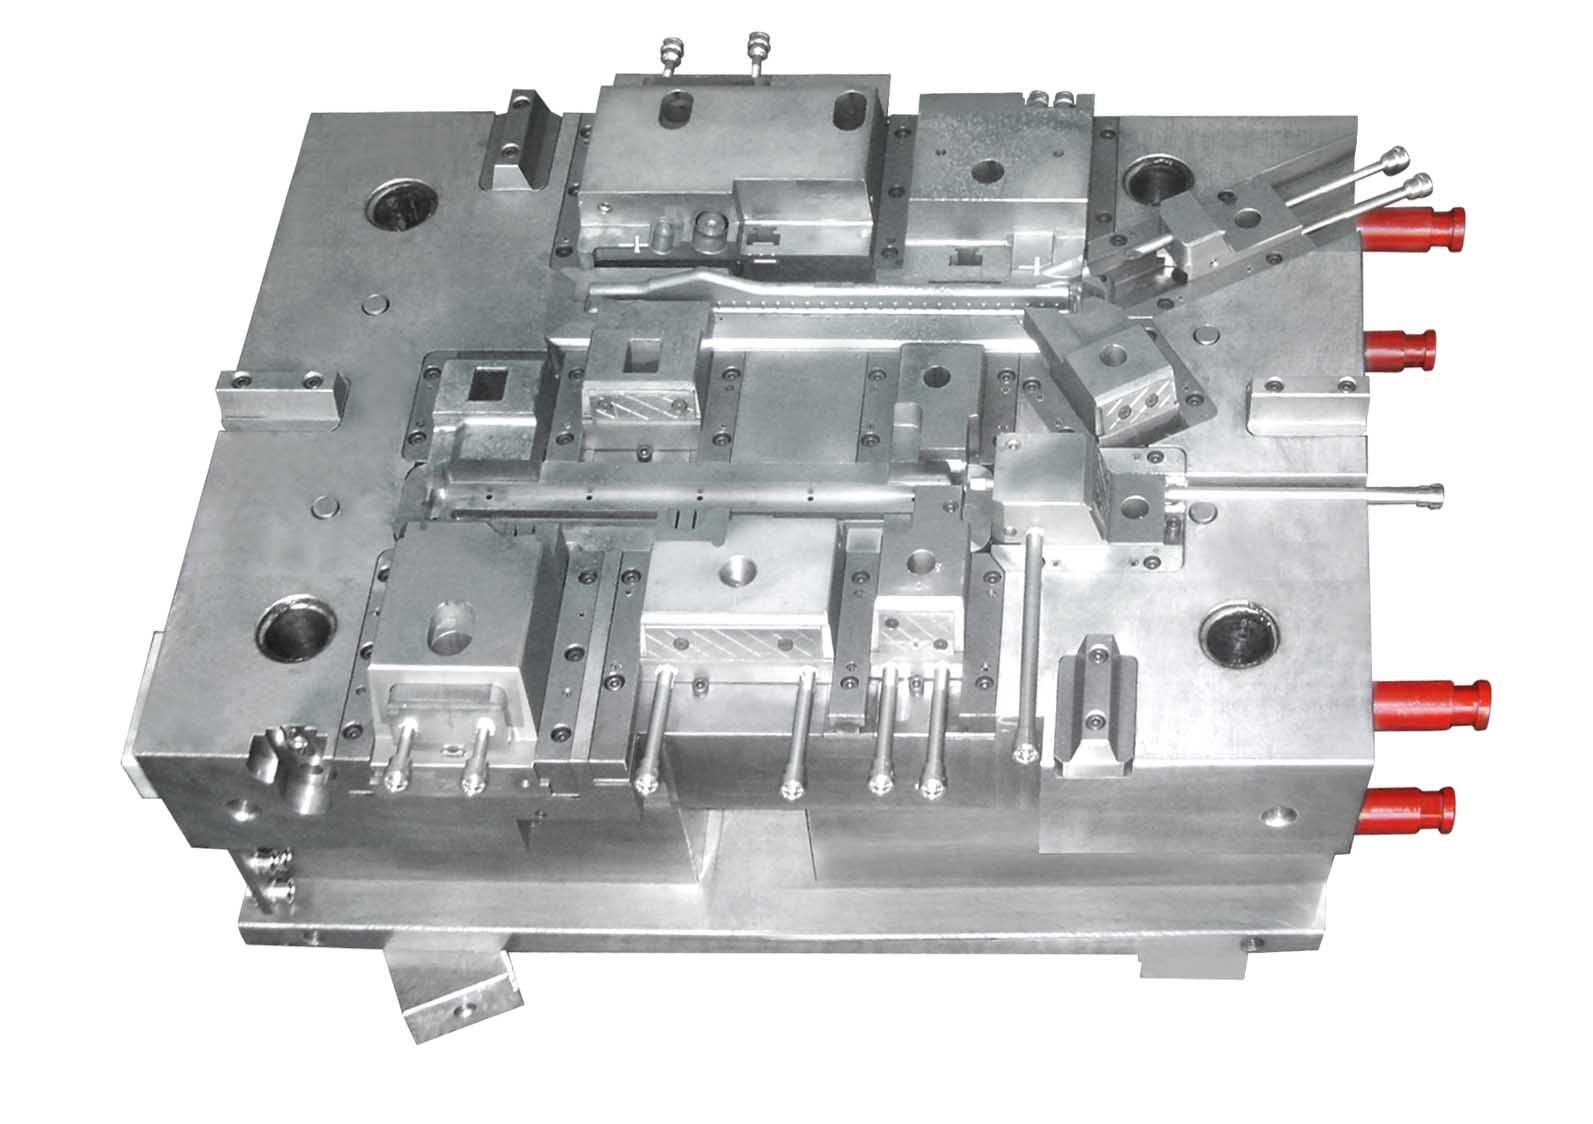 Plastic Injection Mold Gallery